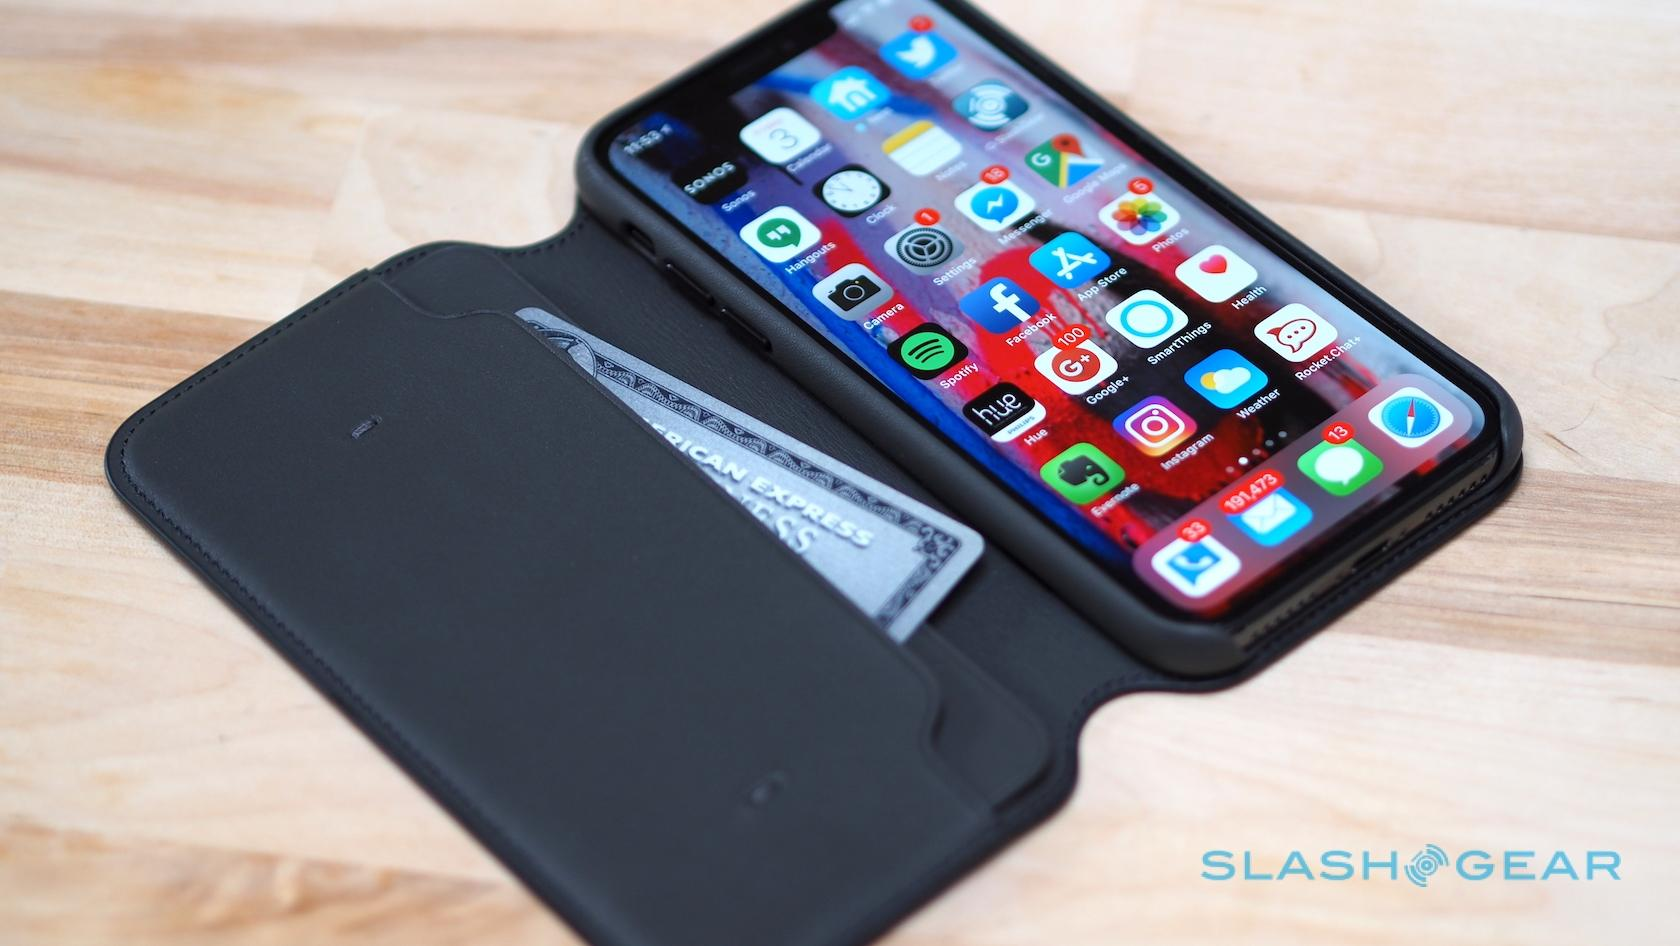 new product 8d601 3064a Apple's iPhone X Leather Folio case is really slick - SlashGear